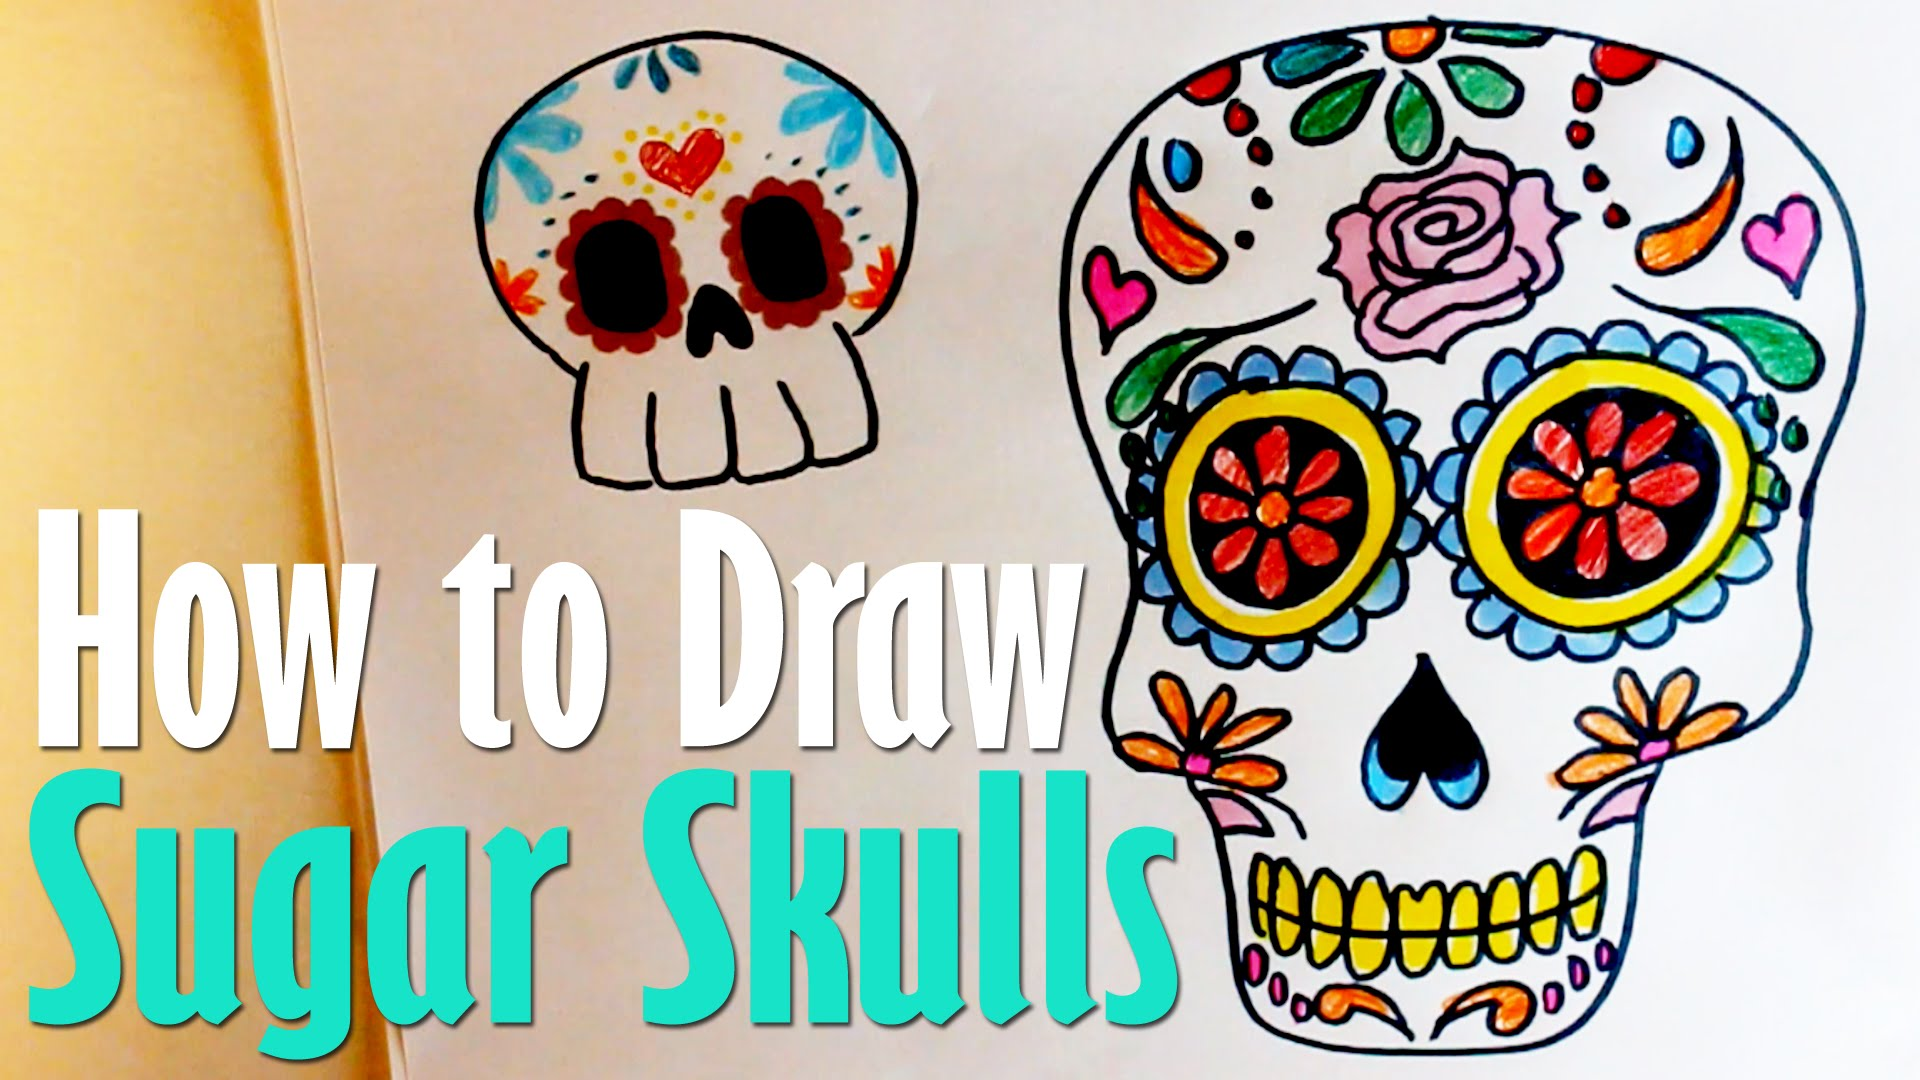 1920x1080 How To Draw Sugar Skulls